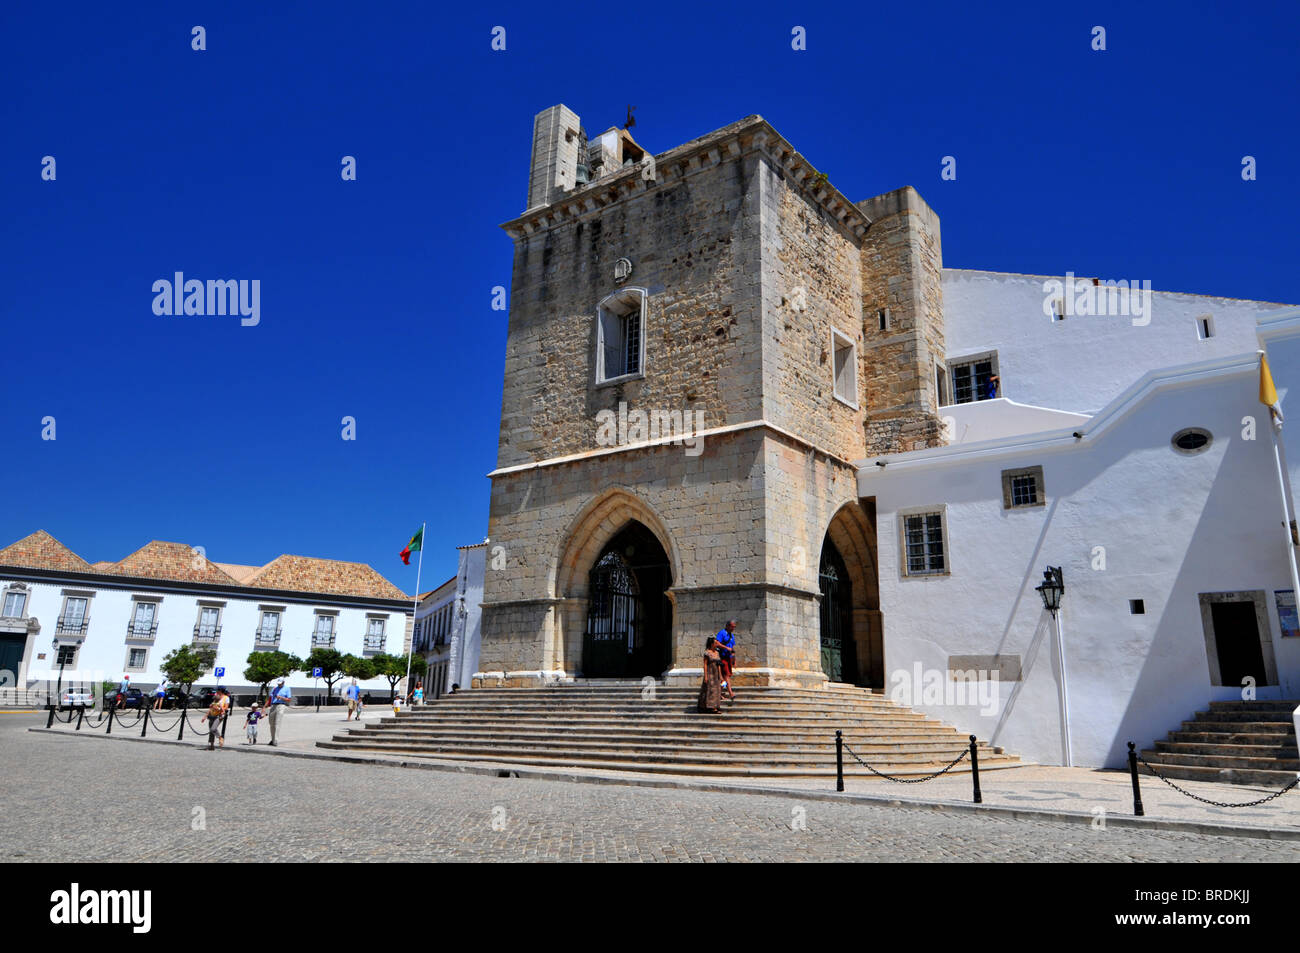 Cathedral in square of Largo da Se Cathedral, Faro old town, Portugal - Stock Image